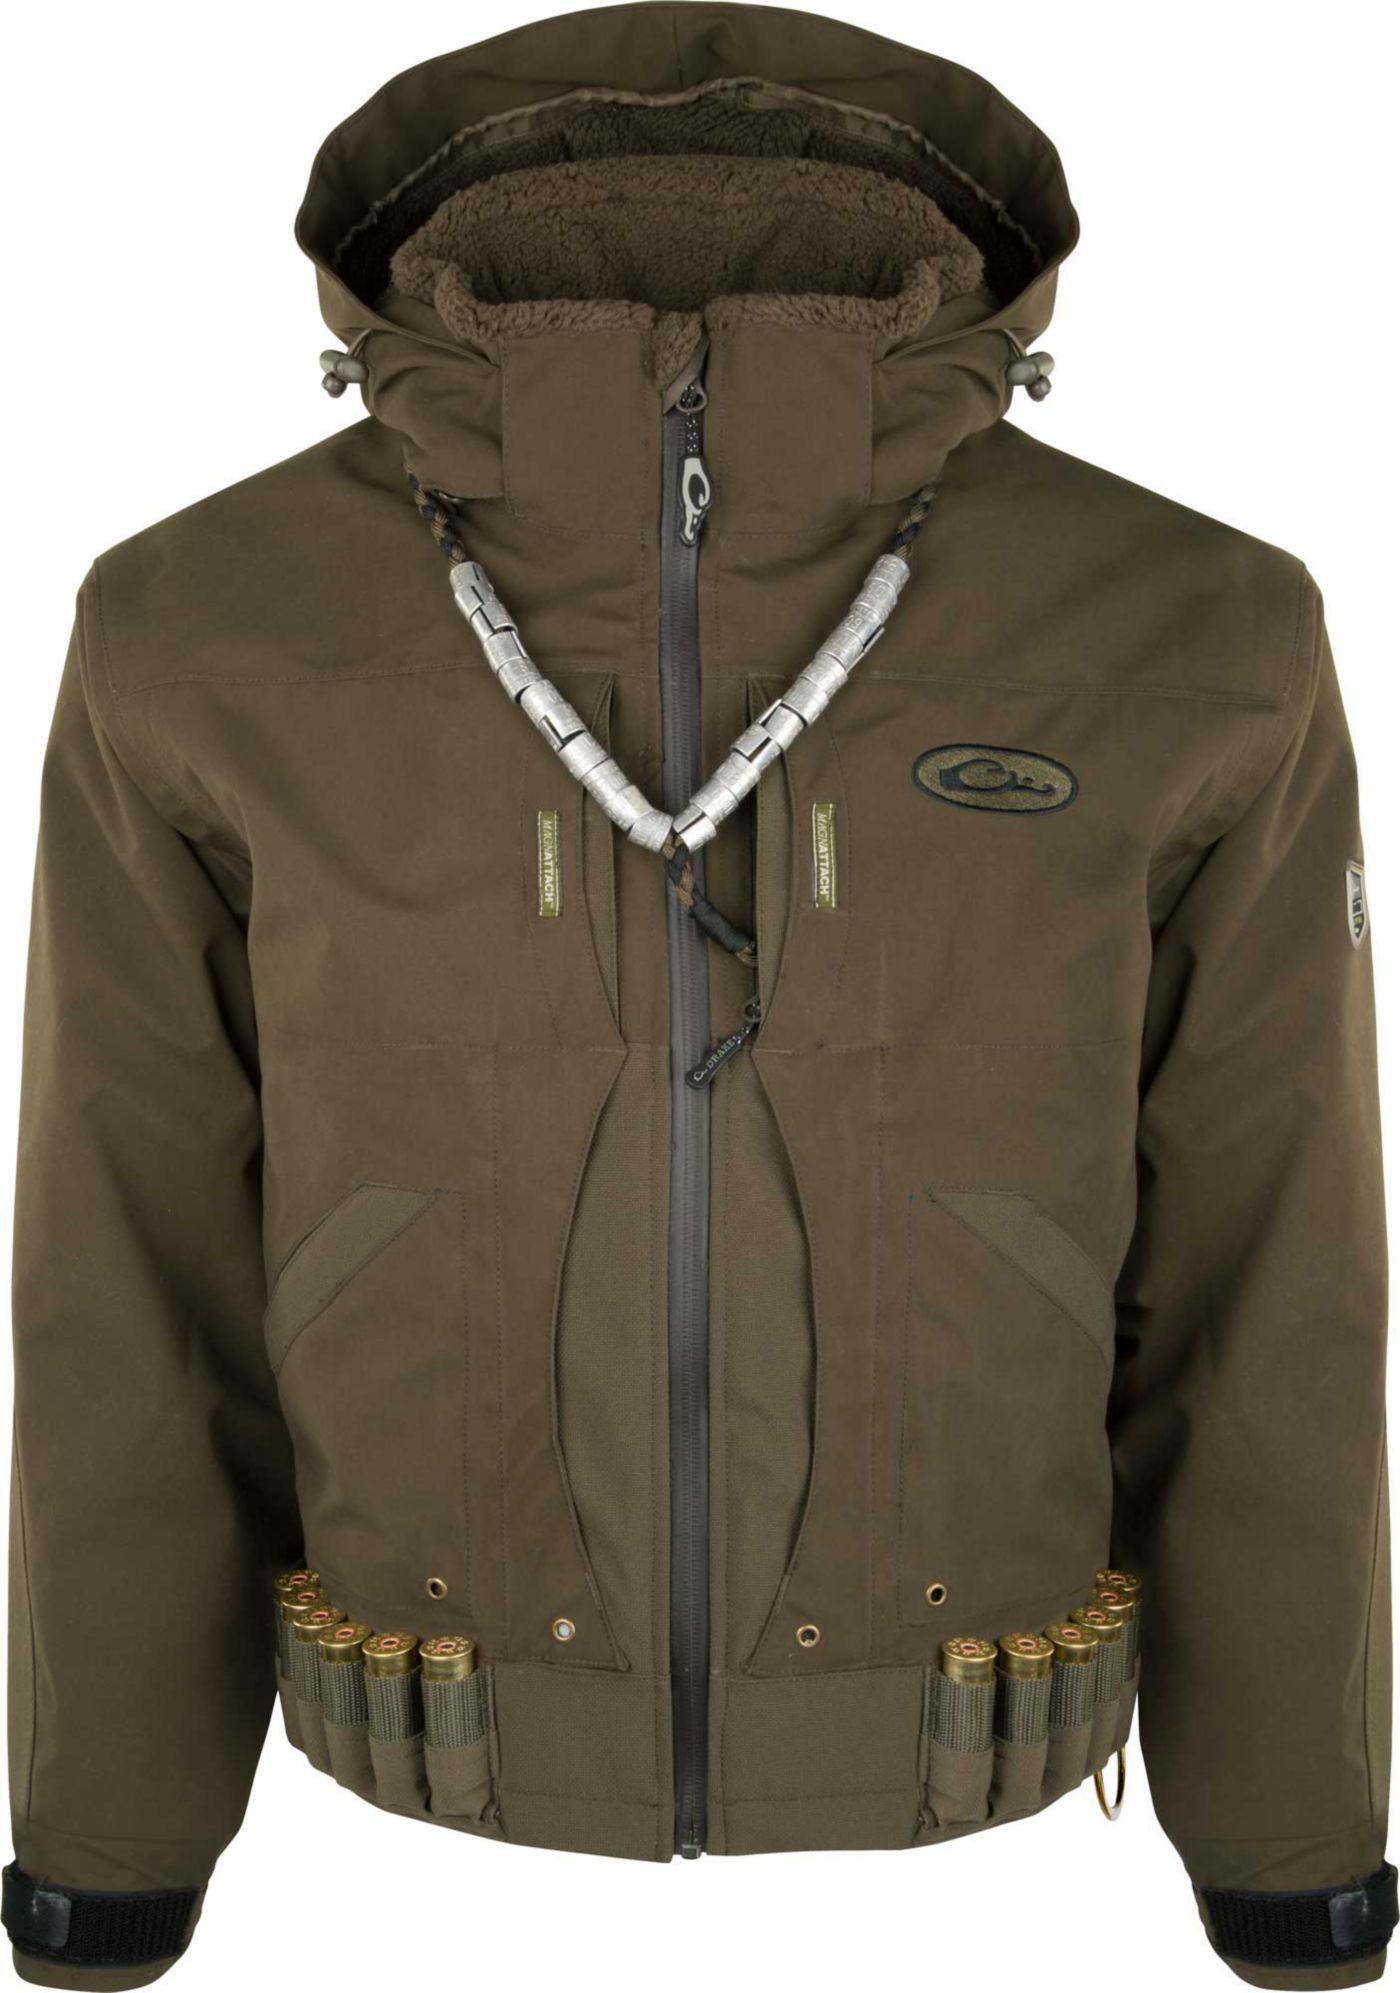 Drake Waterfowl Men's Guardian Elite Flooded Timber Shell Weight Hunting Jacket